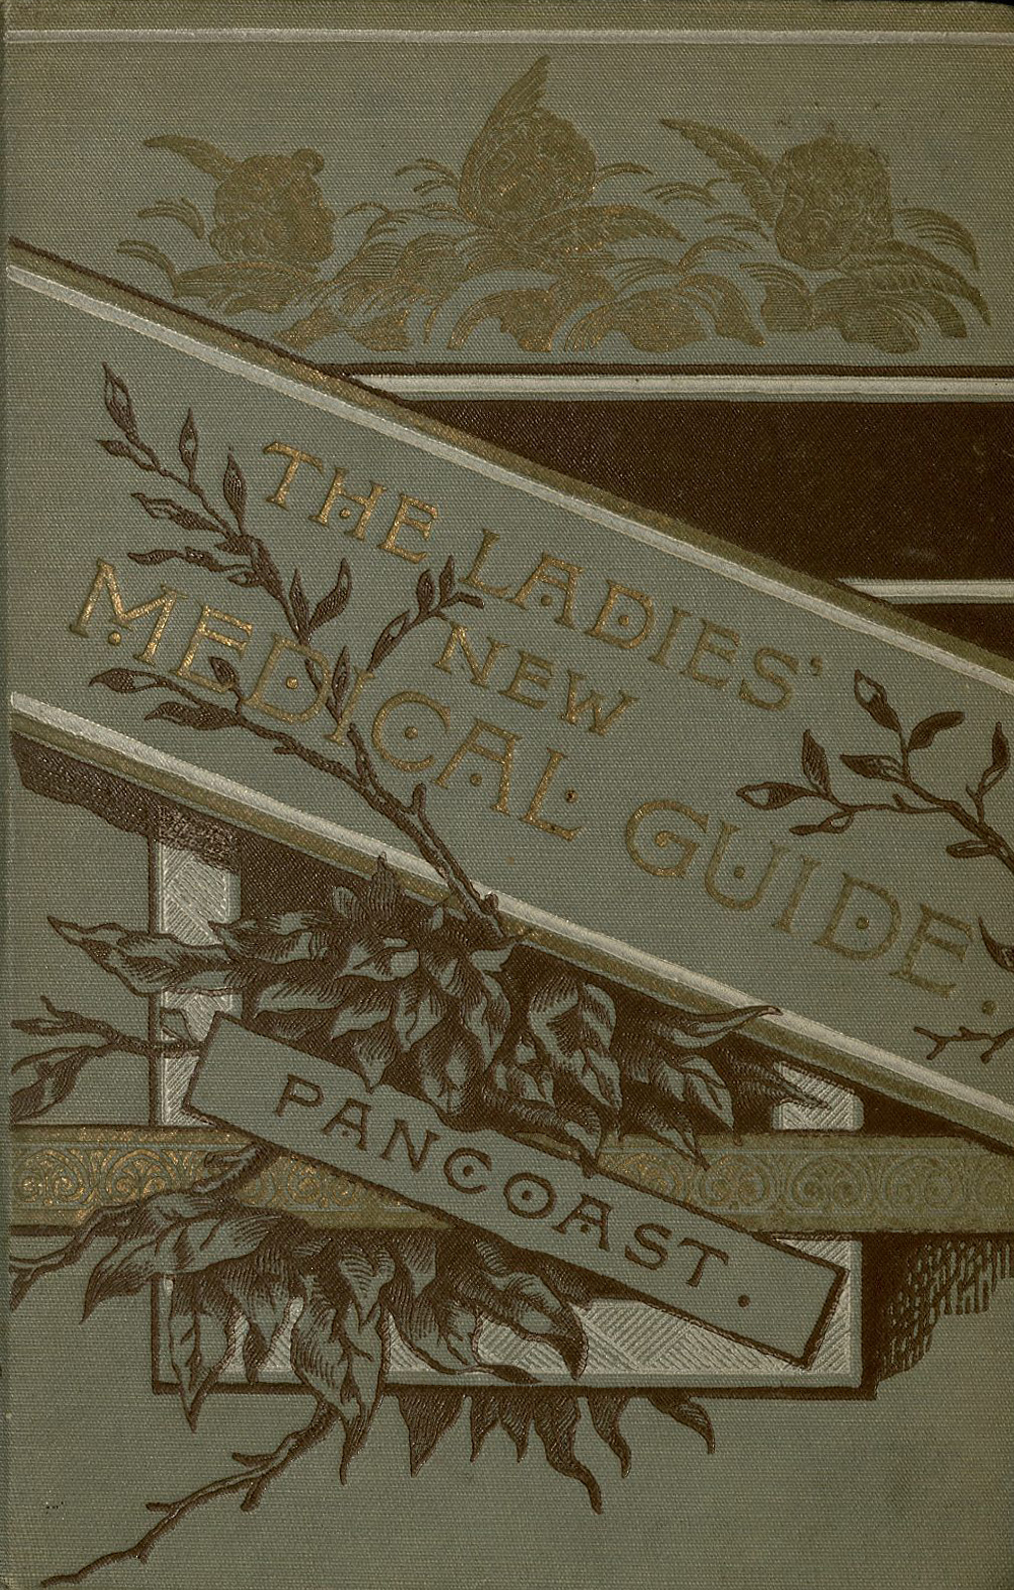 19th century gender roles for women oviatt library the ladies medical guide an instructor counsellor and friend indispensable to mothers